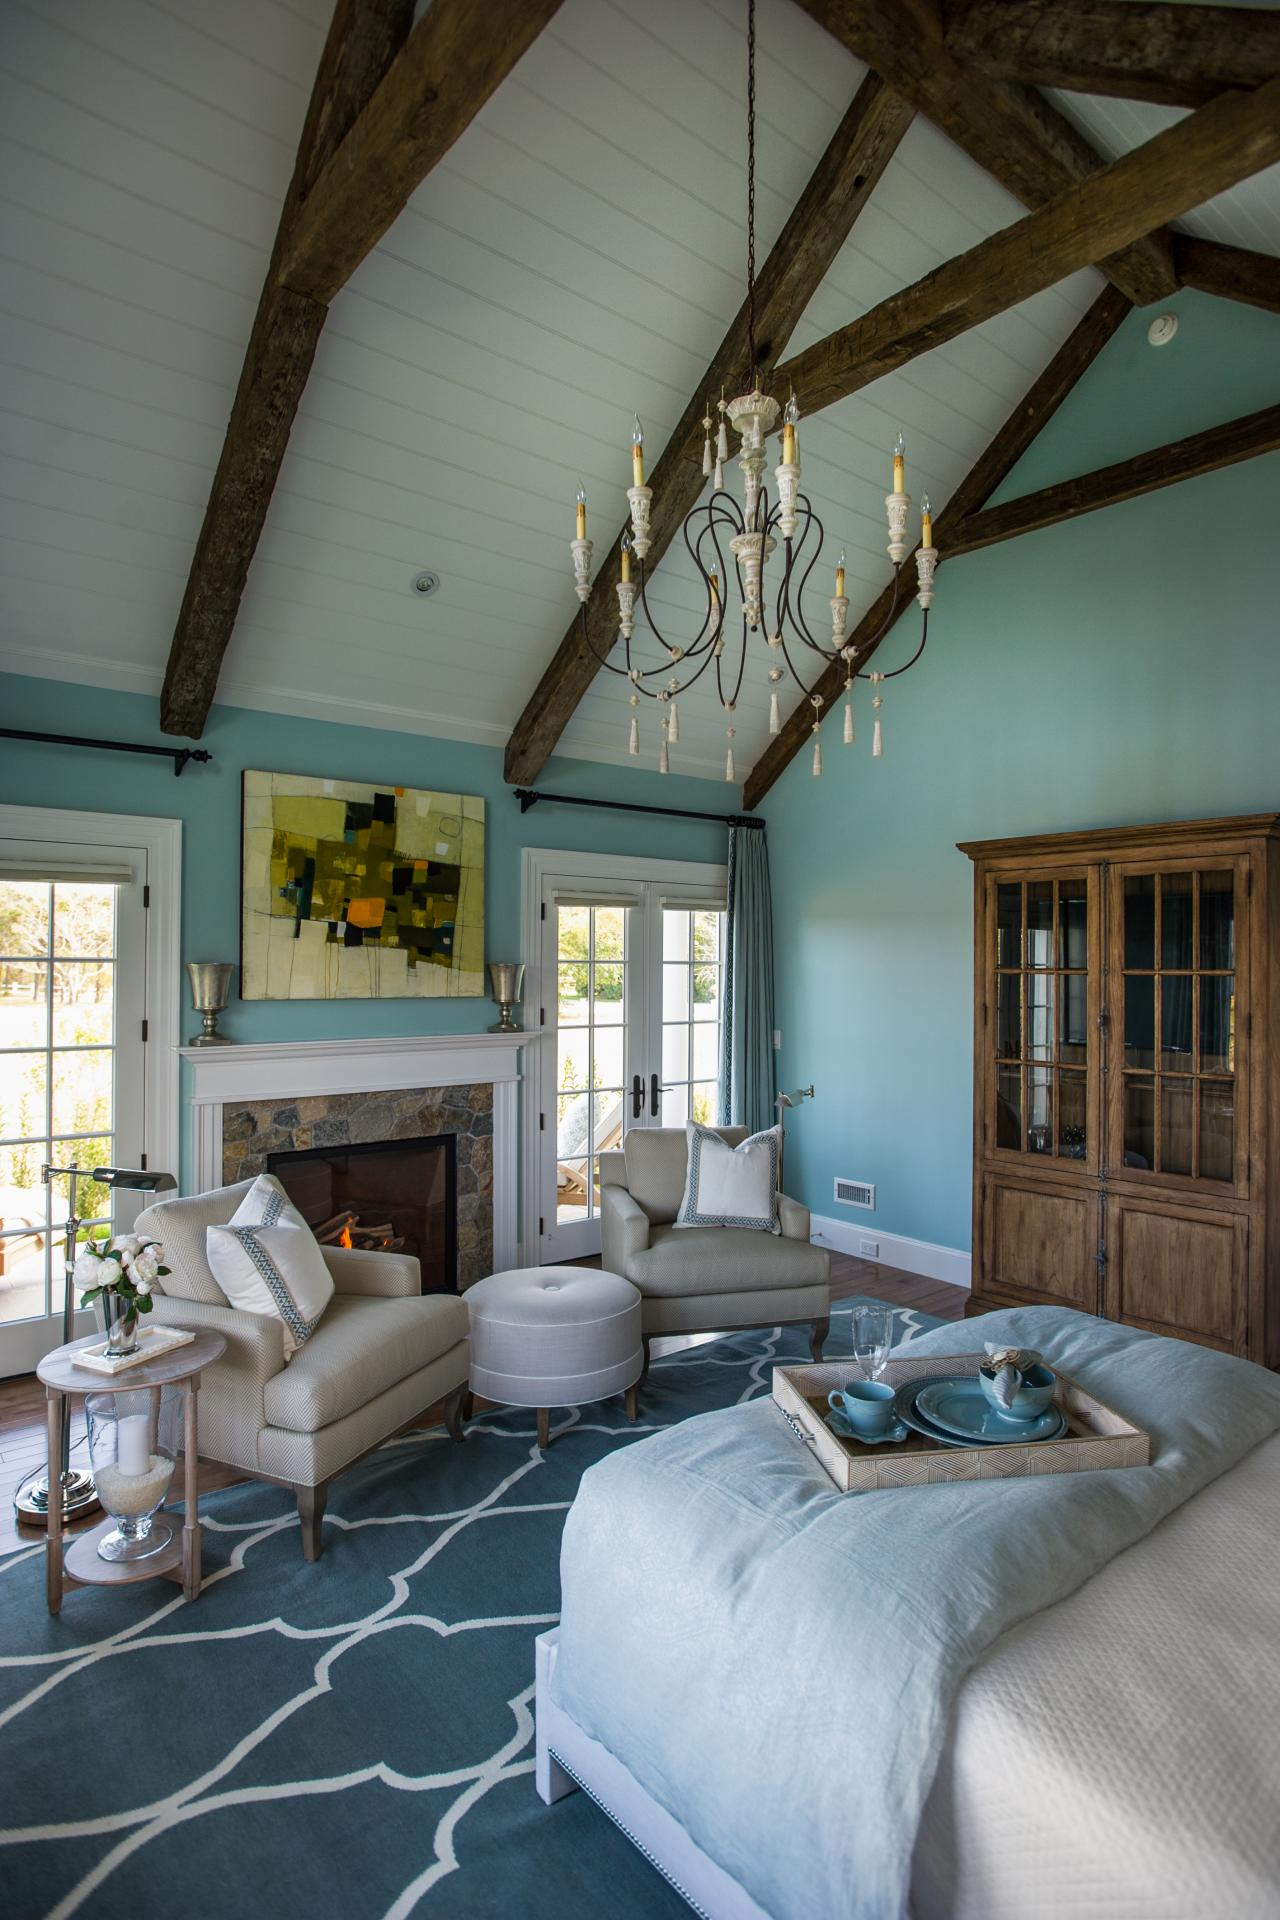 dh2015_master-bedroom_chandelier-hangs-from-cathedral-ceiling_v.jpg.rend.hgtvcom.1280.1920.jpeg